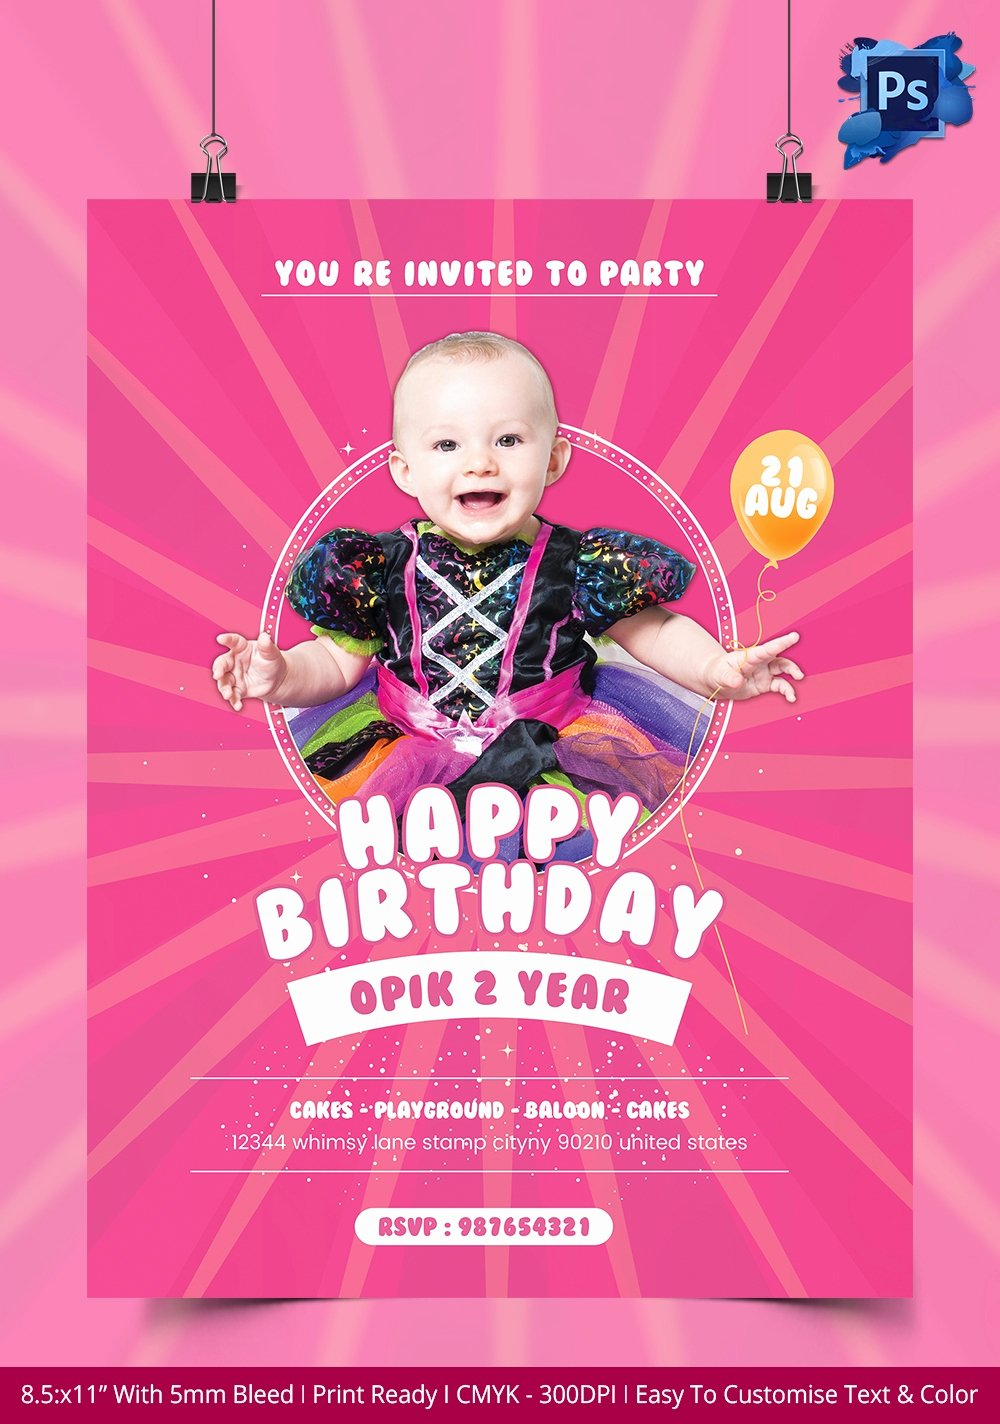 Birthday Bash Flyer Template Beautiful 135 Psd Flyer Templates – Free Psd Eps Ai Indesign